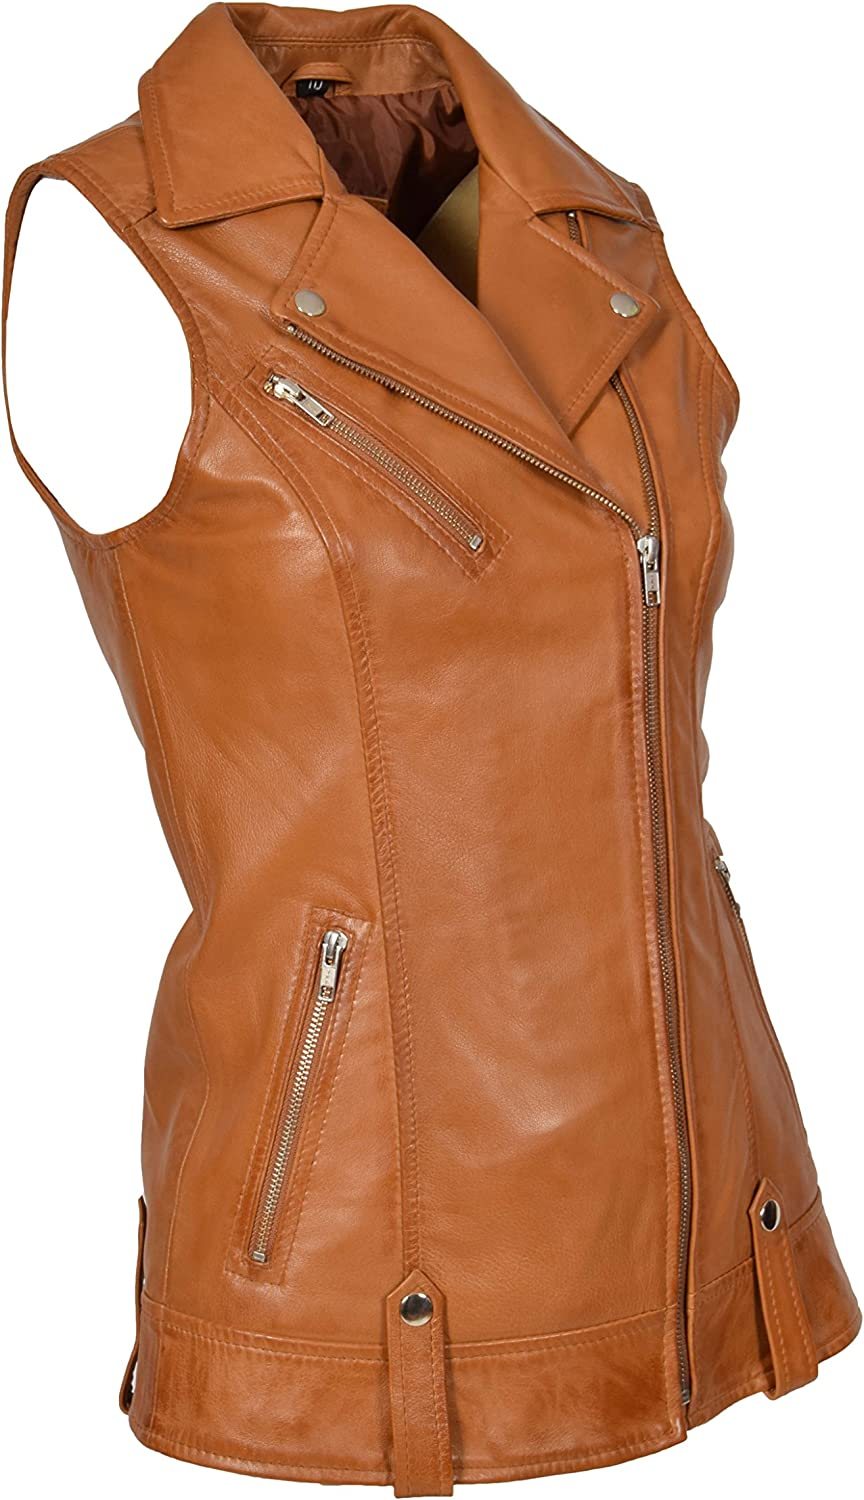 A1 FASHION GOODS Womens Real Leather Waistcoat TAN Gilet Fitted Vest Jacket Tess